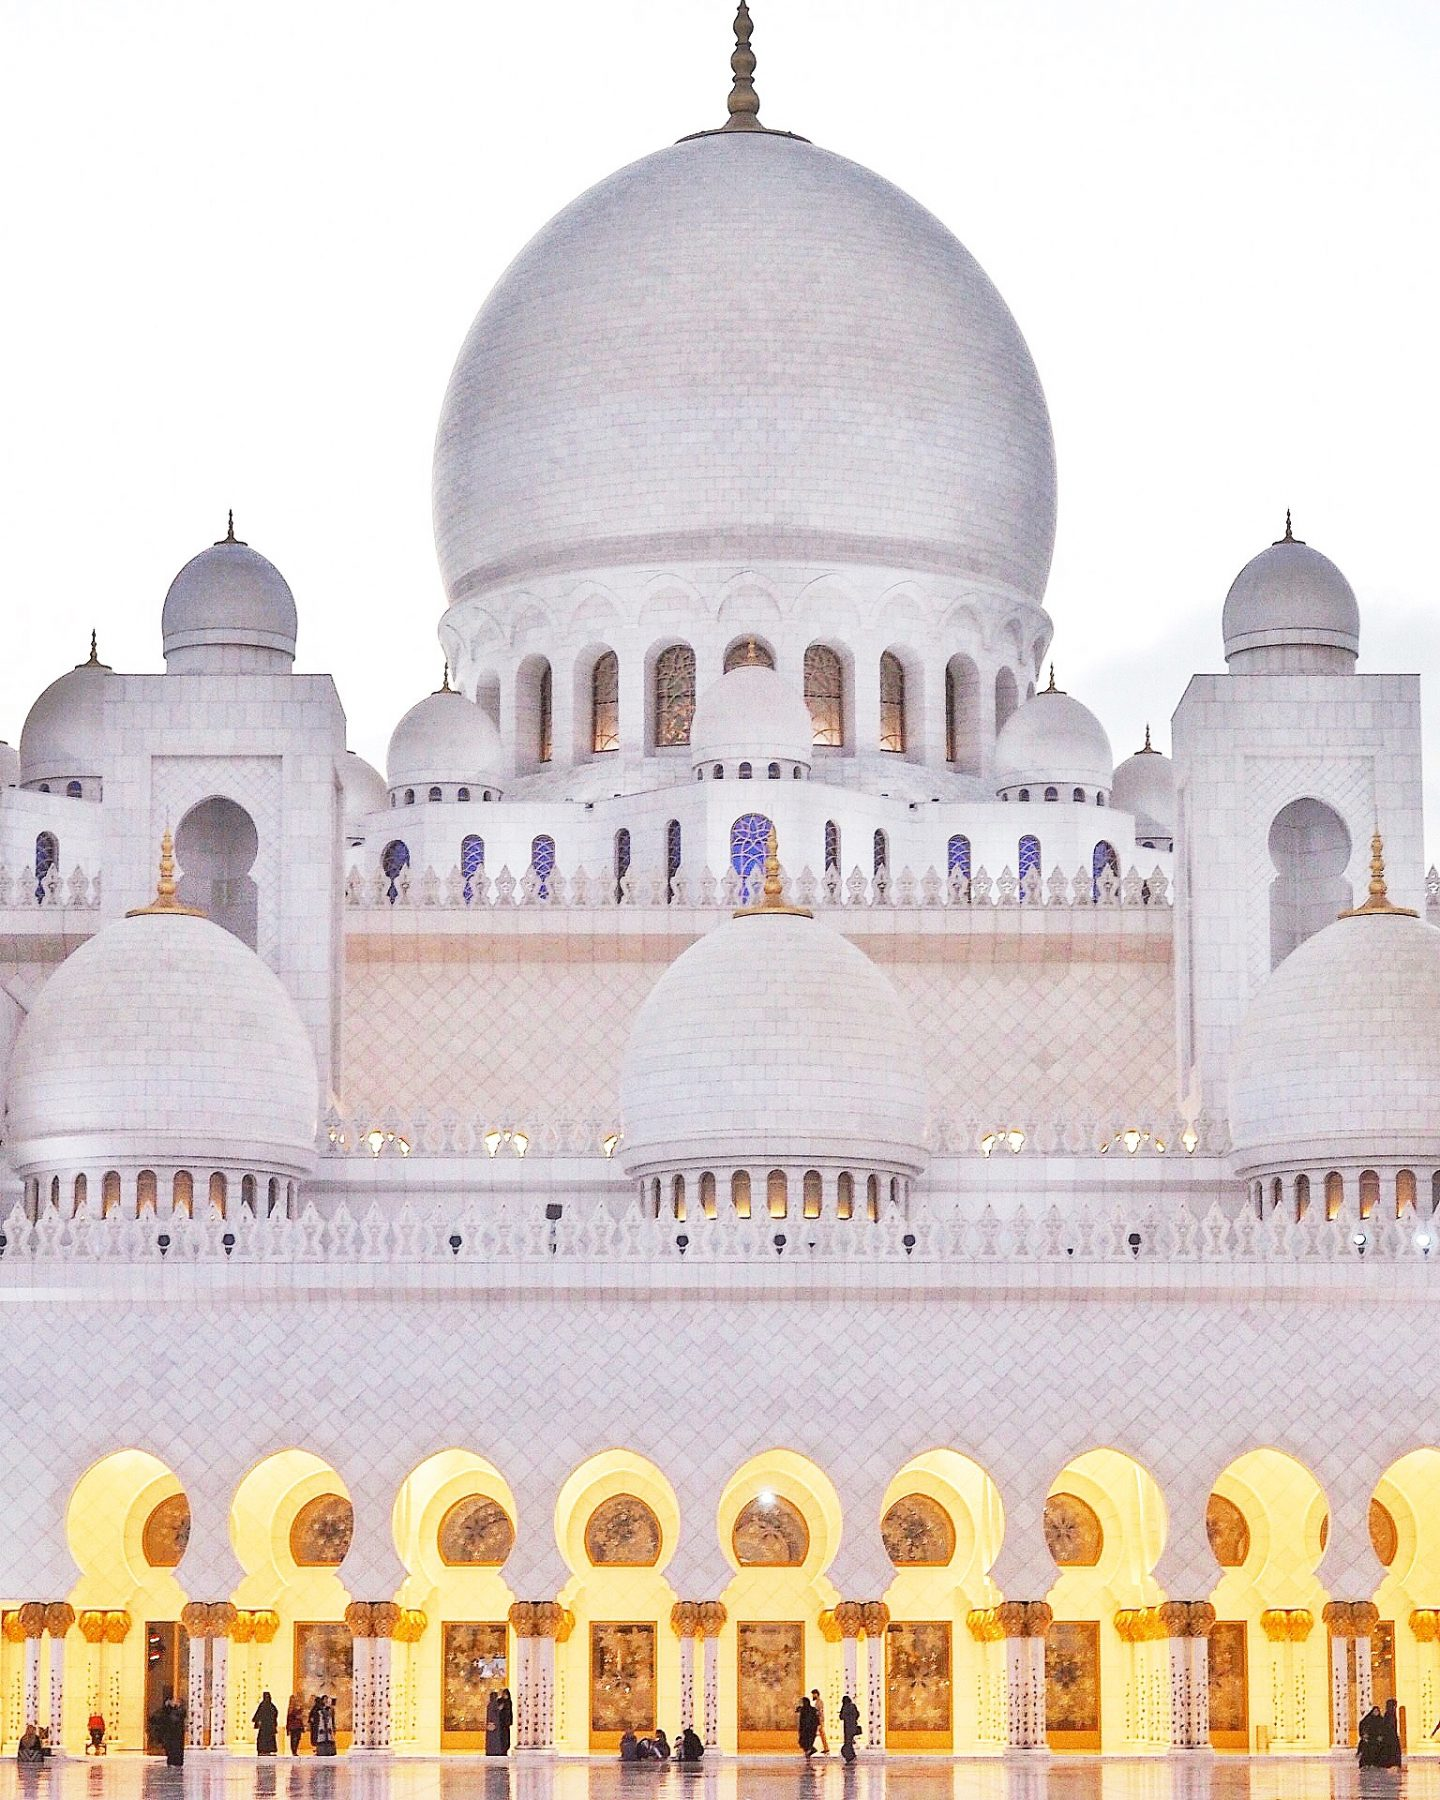 Sheik Zayed Mosque, Abu Dhabi Landmark